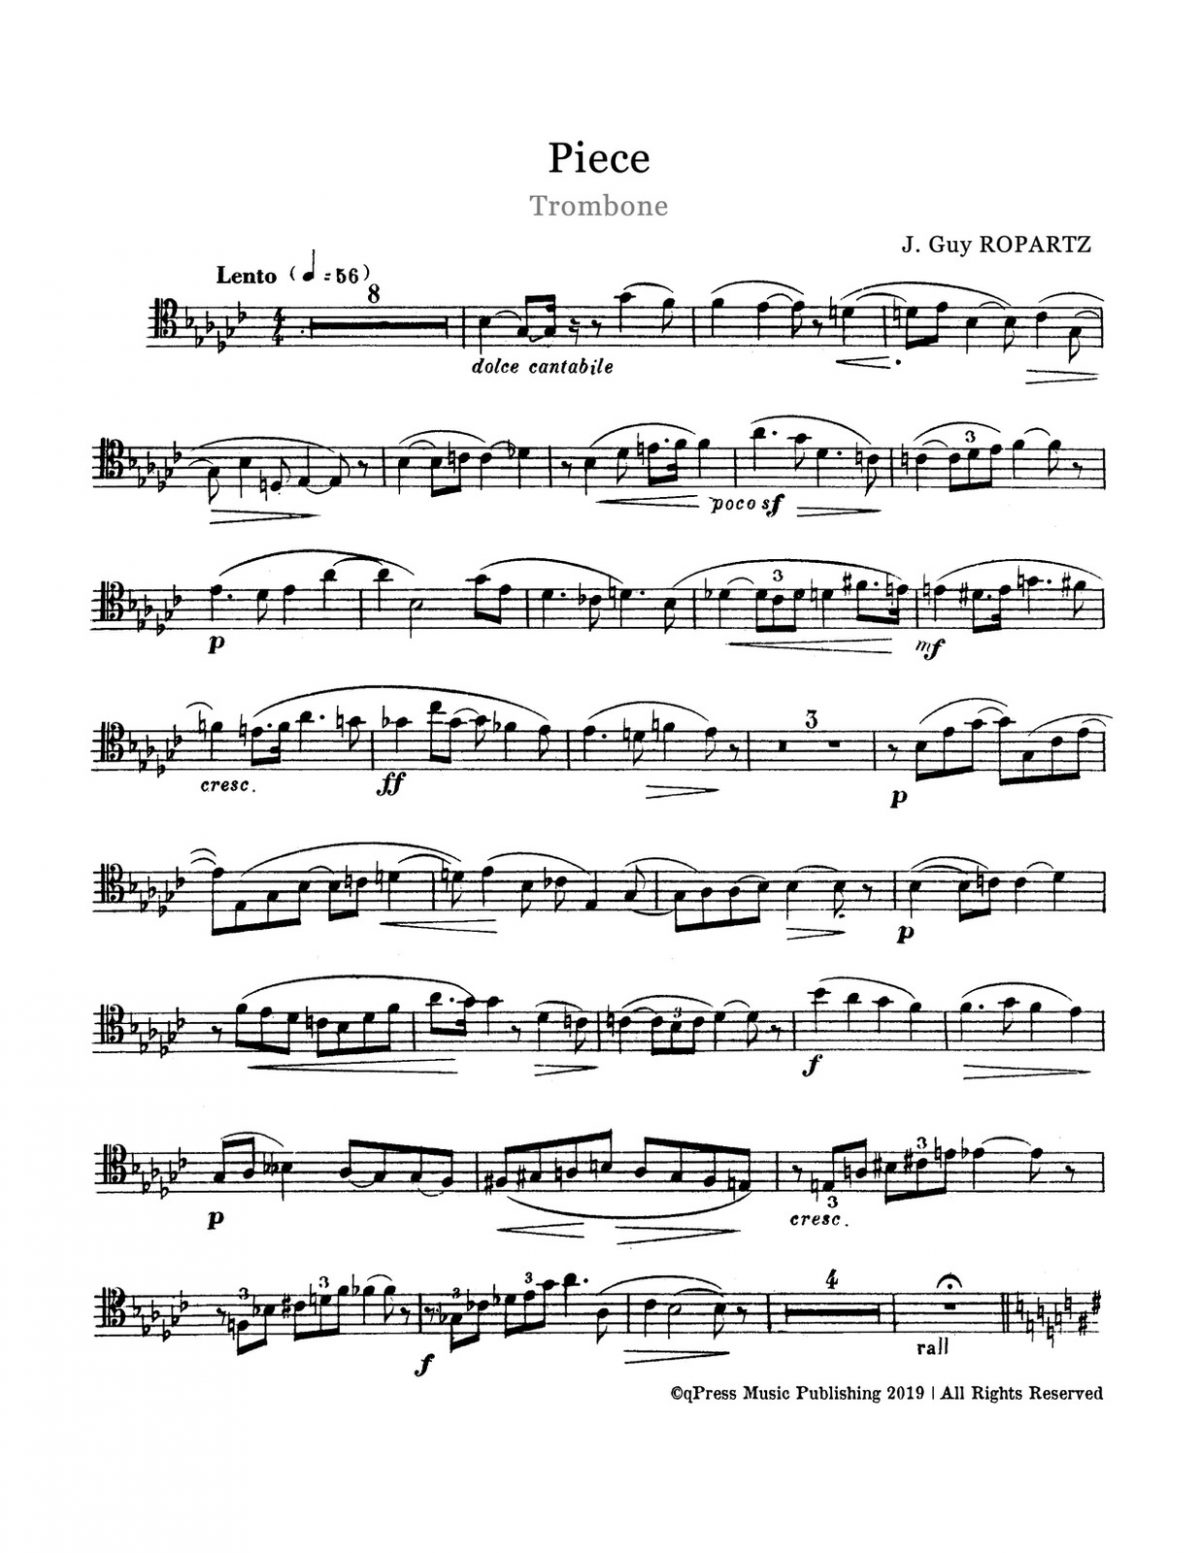 Ropartz, Piece for Trombone and Piano-p03